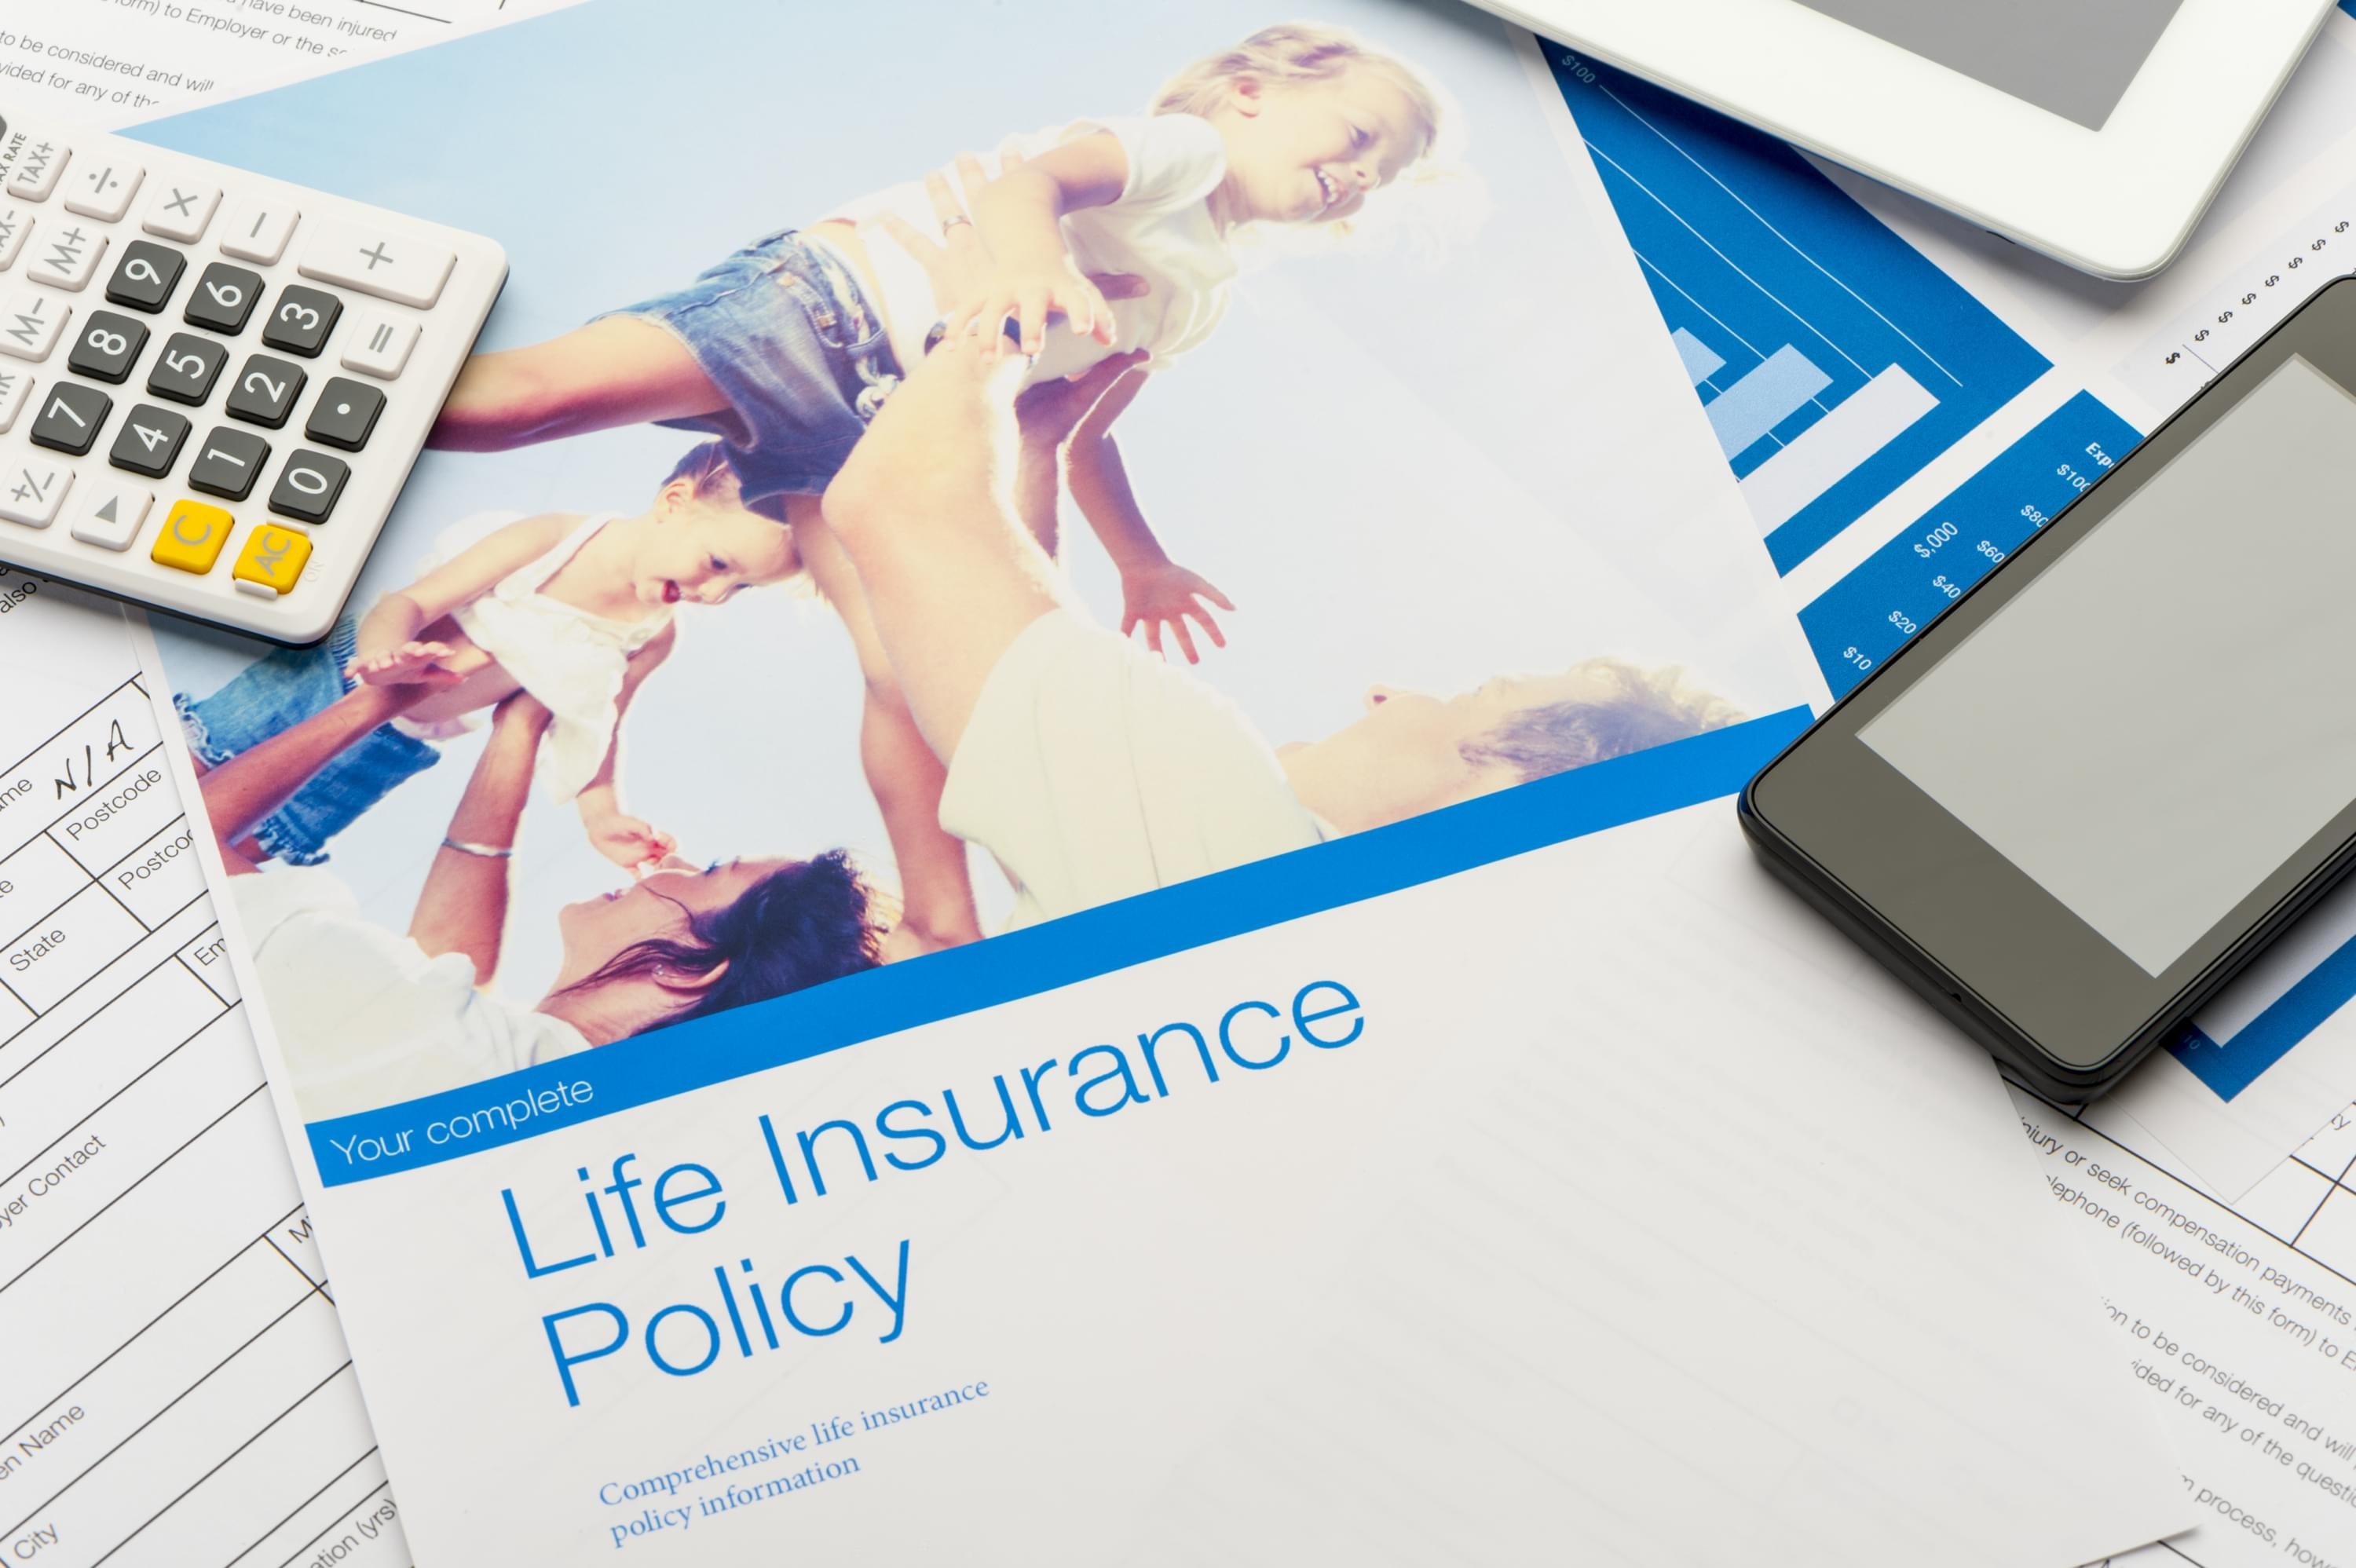 KING BENEFIT SOLUTIONS | Life Insurance